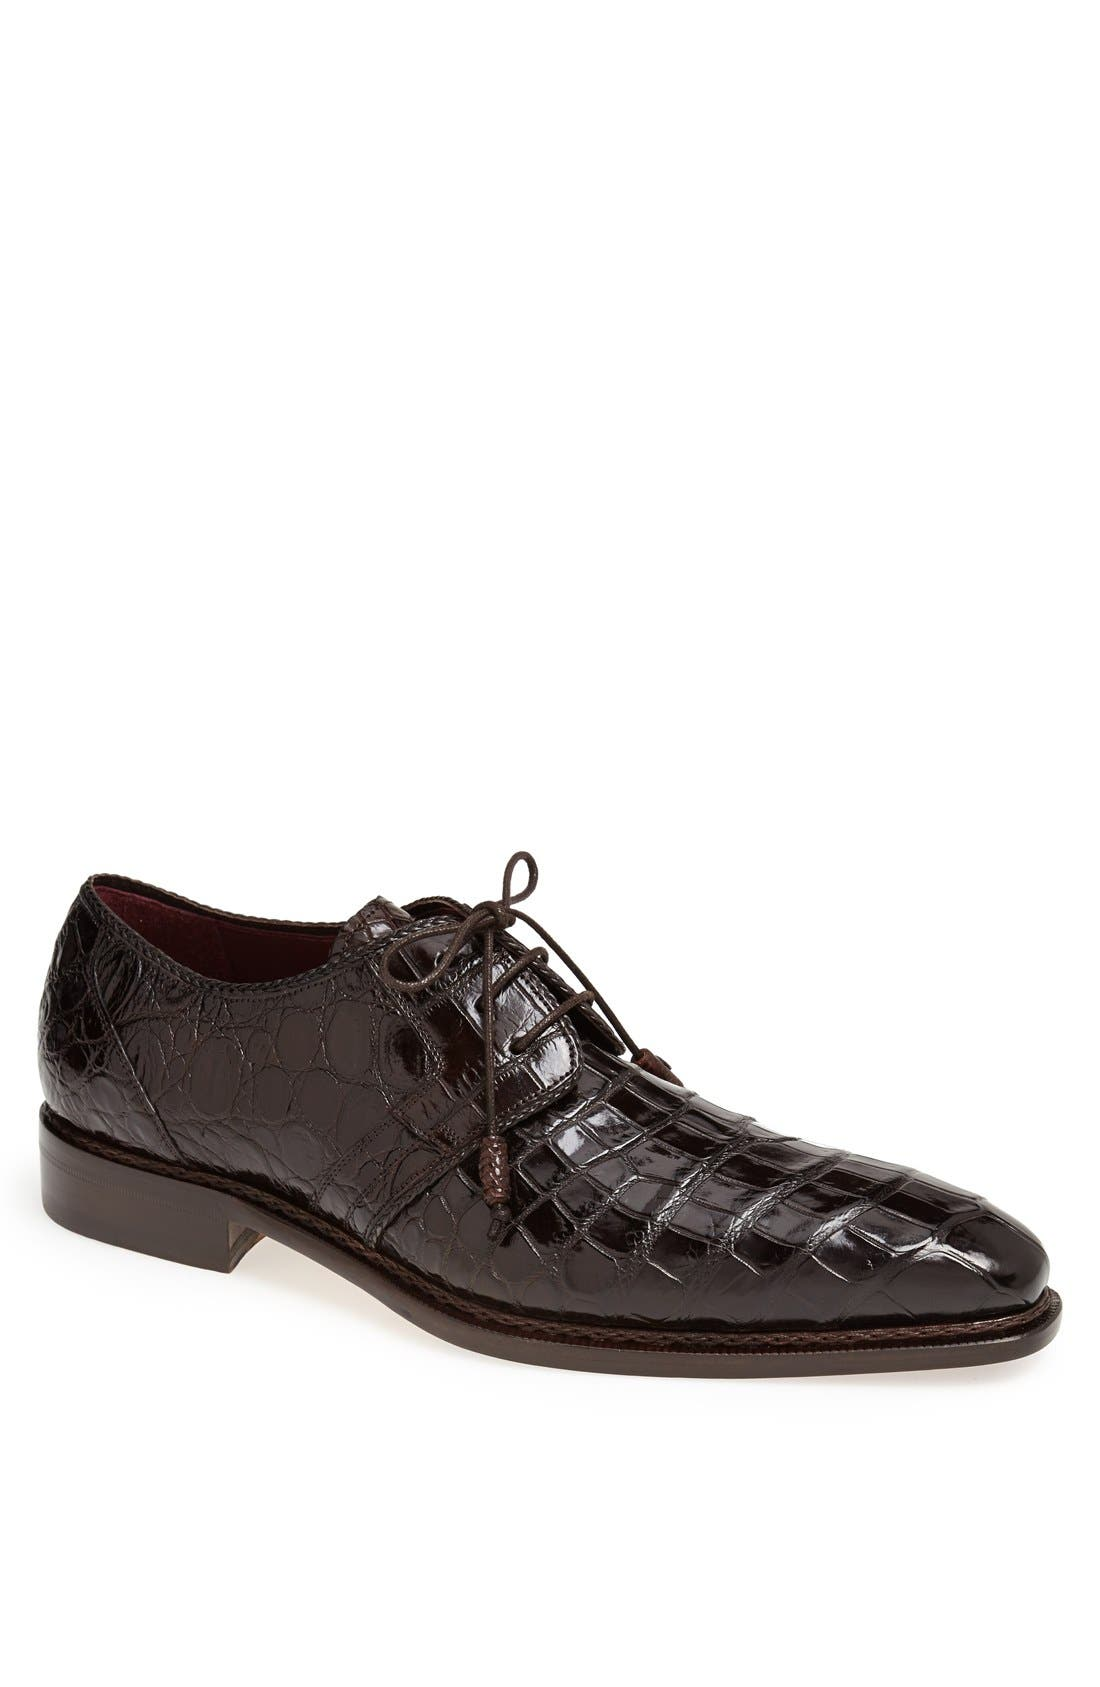 'Marini' Alligator Leather Derby,                         Main,                         color, BROWN